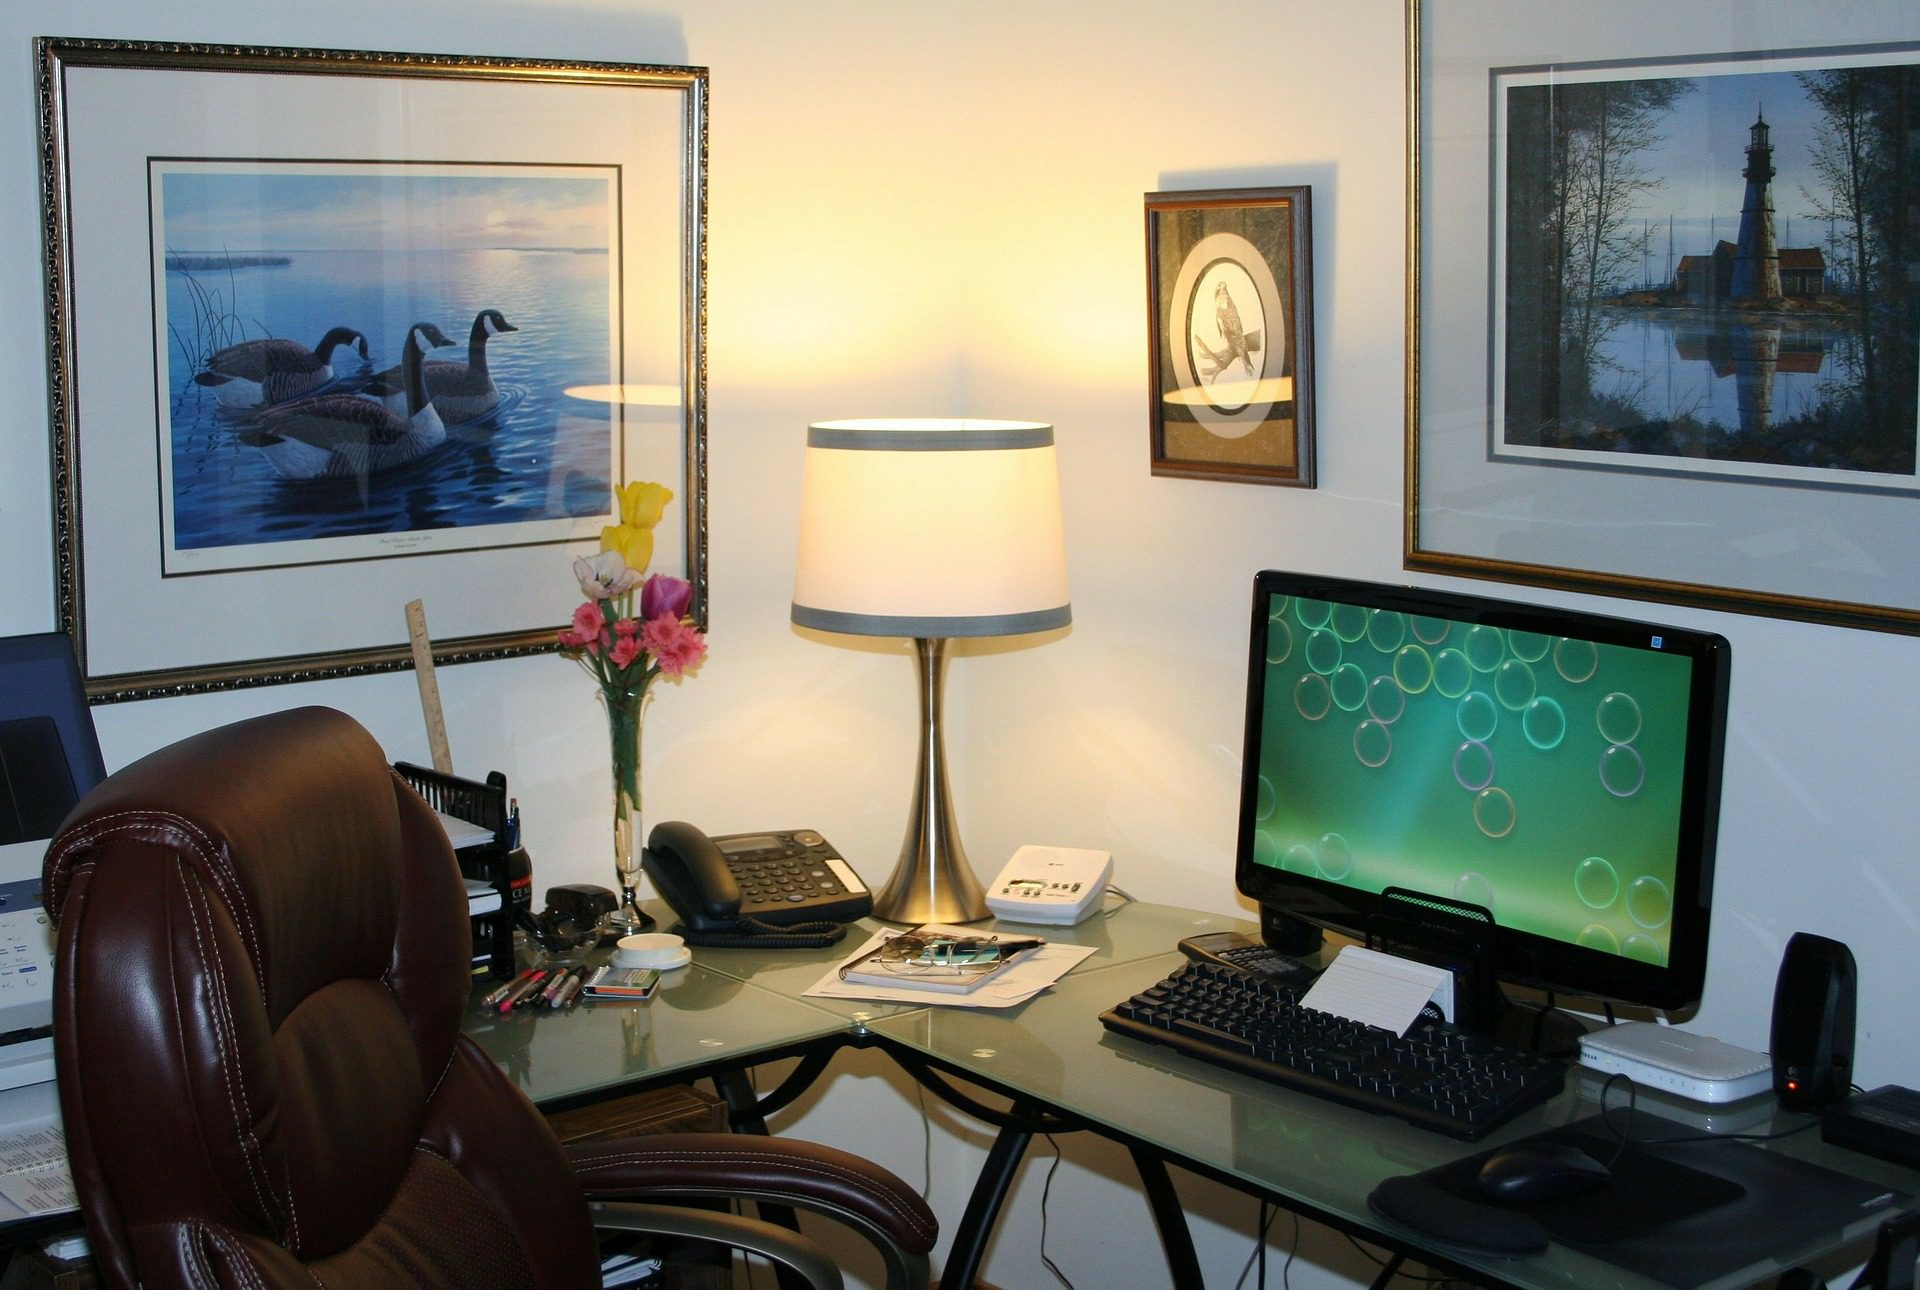 Tips to Improve Your Home Workspace